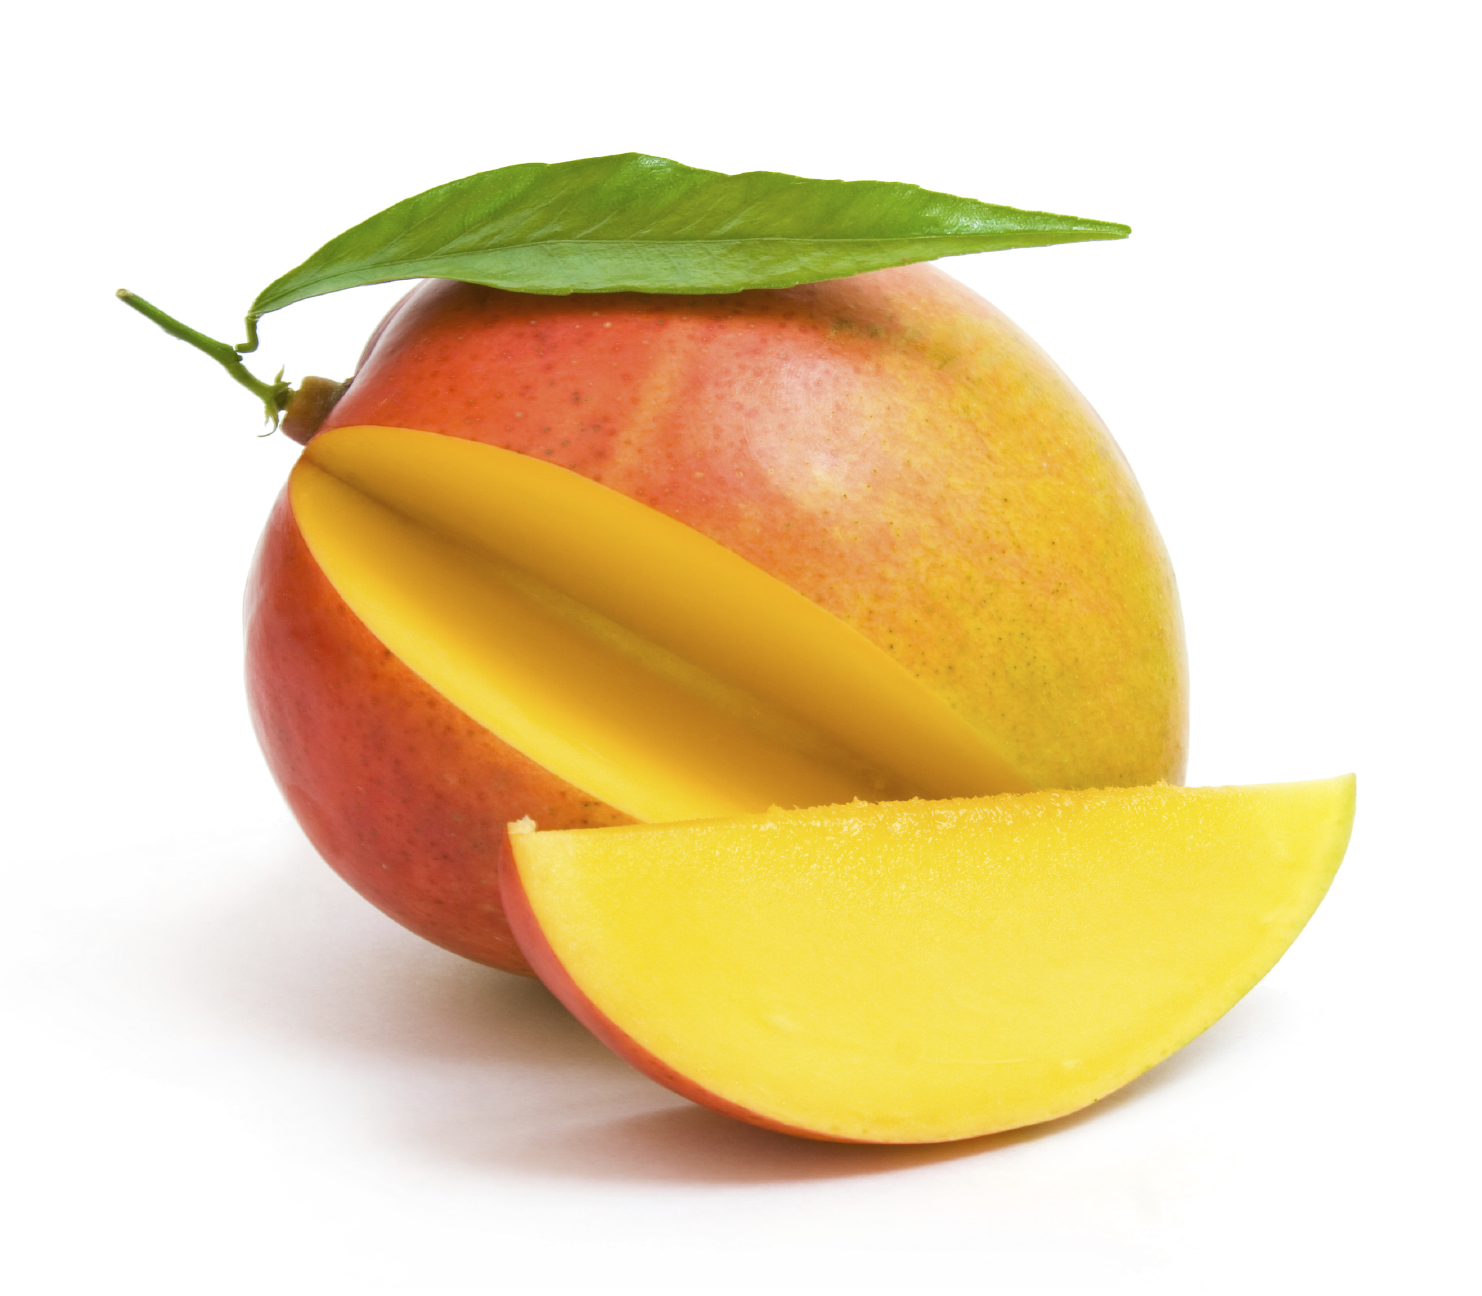 Mango Fruit Slice 2107.57 Kb